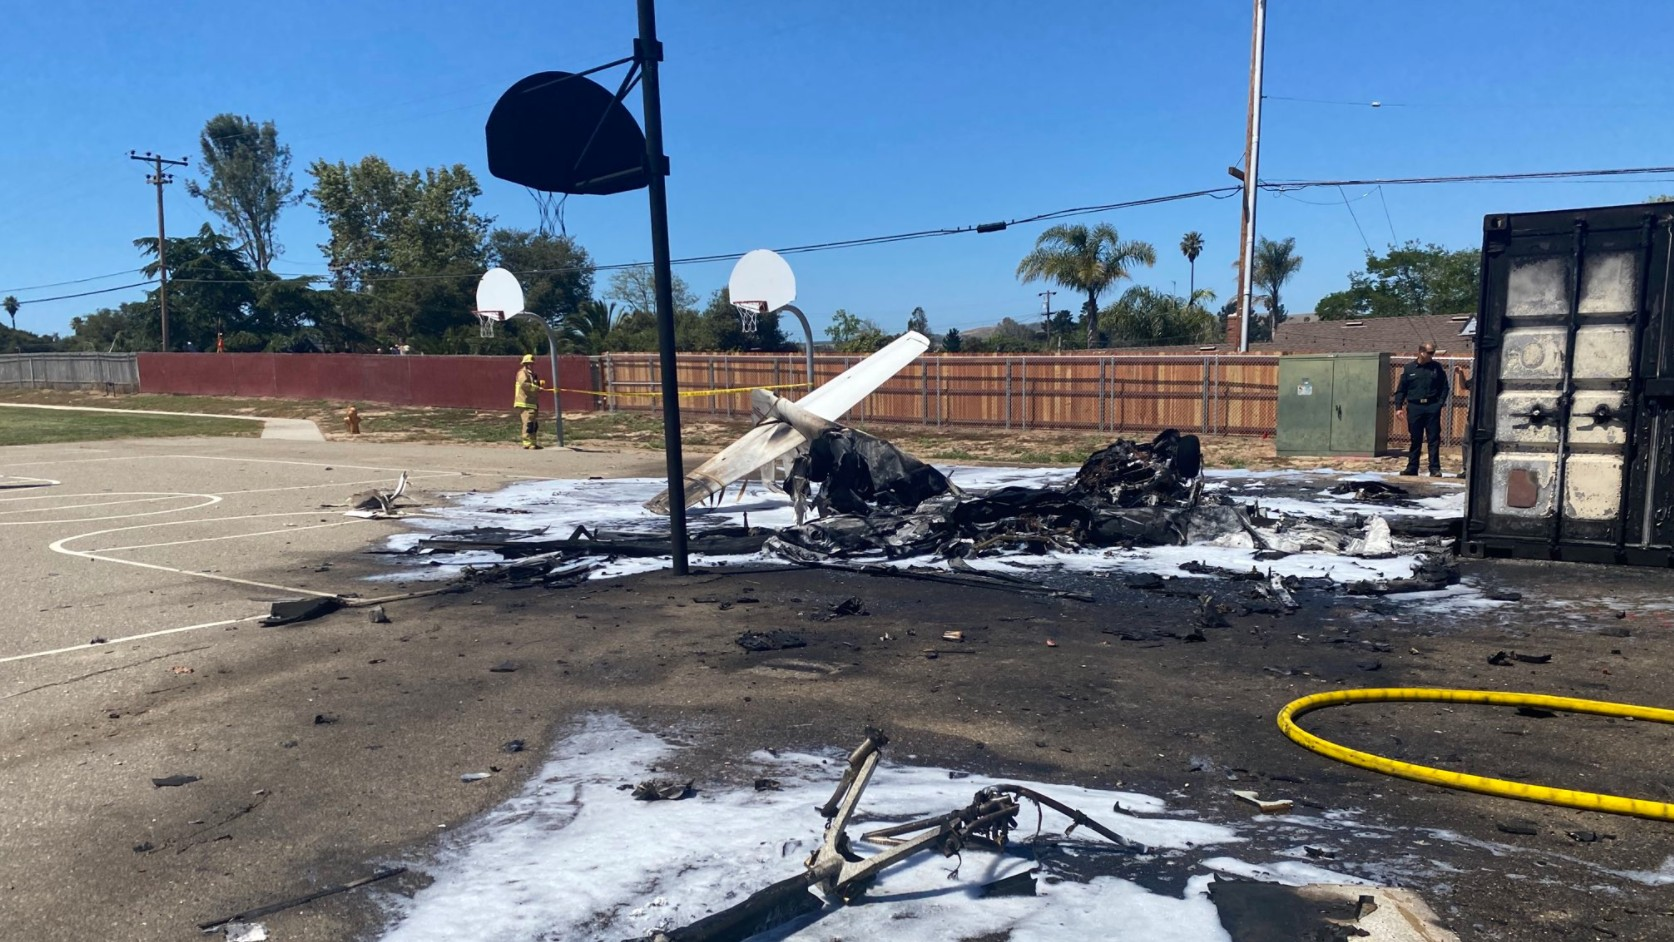 The Santa Maria Fire Department tweeted out a photo from the crash site.